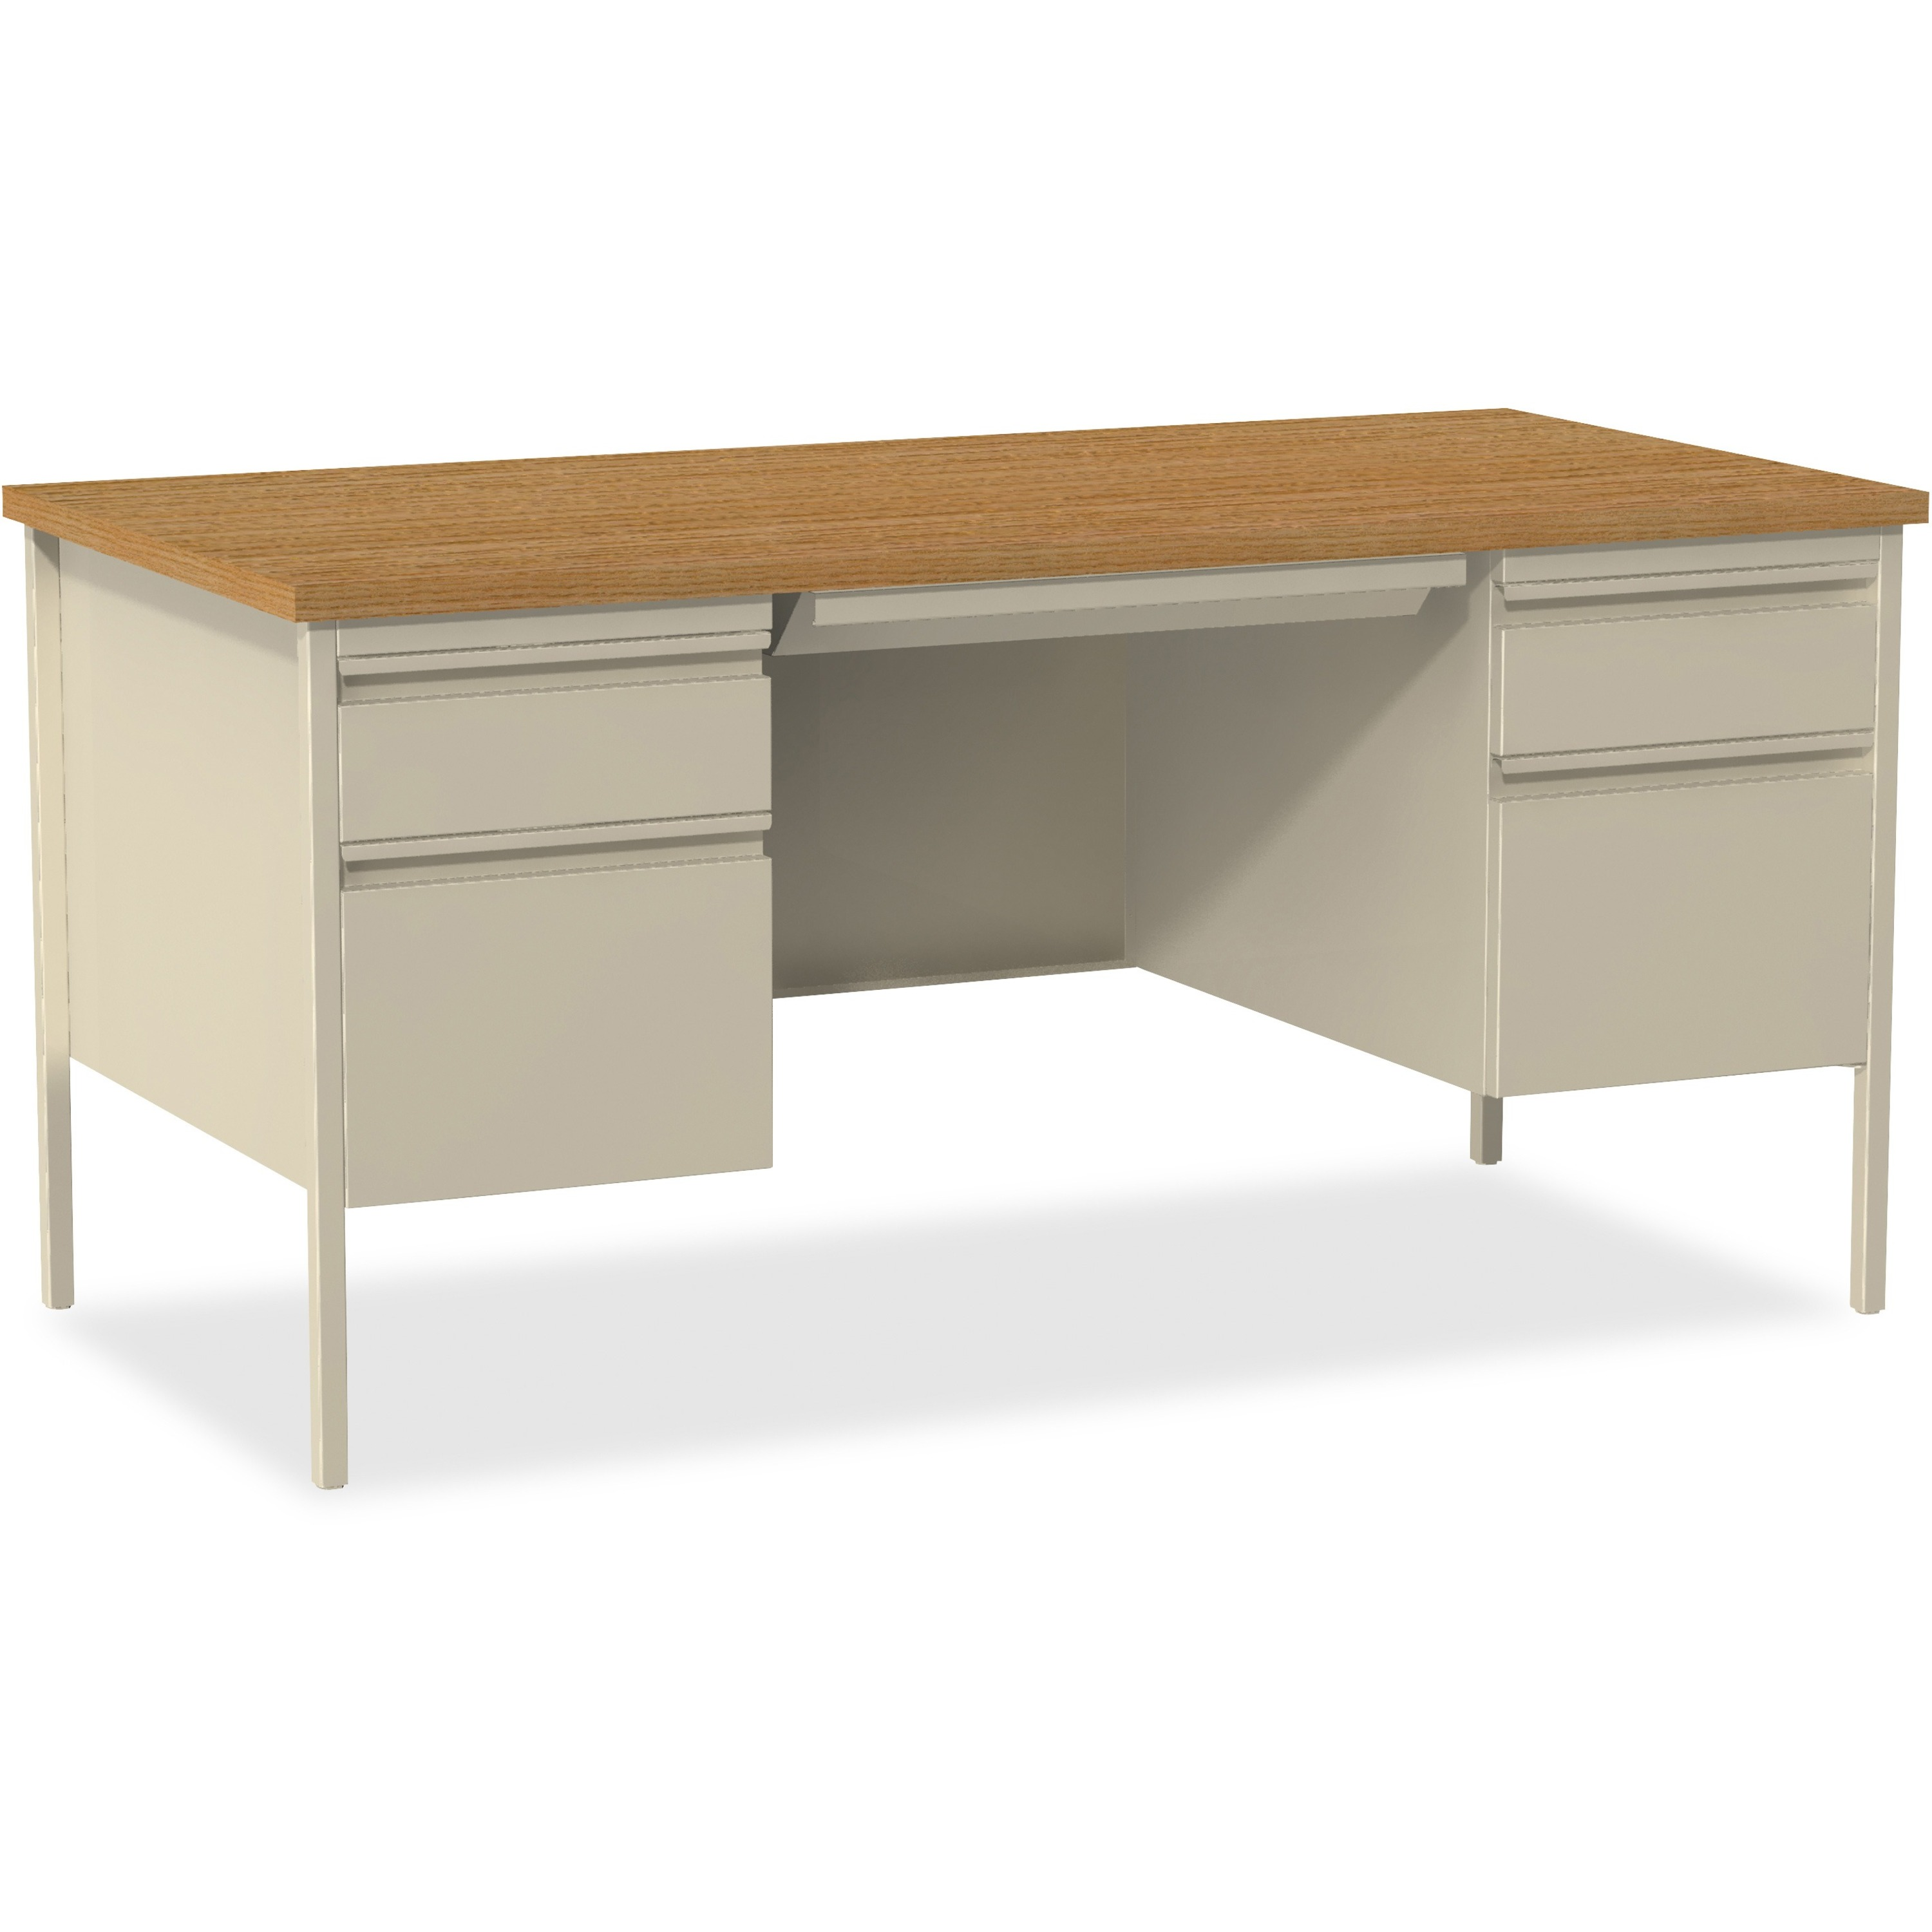 Prime Lorell Fortress Series Double Pedestal Desk Rectangle Top 2 Pedestals 60 Table Top Width X 30 Table Top Depth X 1 1 Table Top Thickness Download Free Architecture Designs Pushbritishbridgeorg